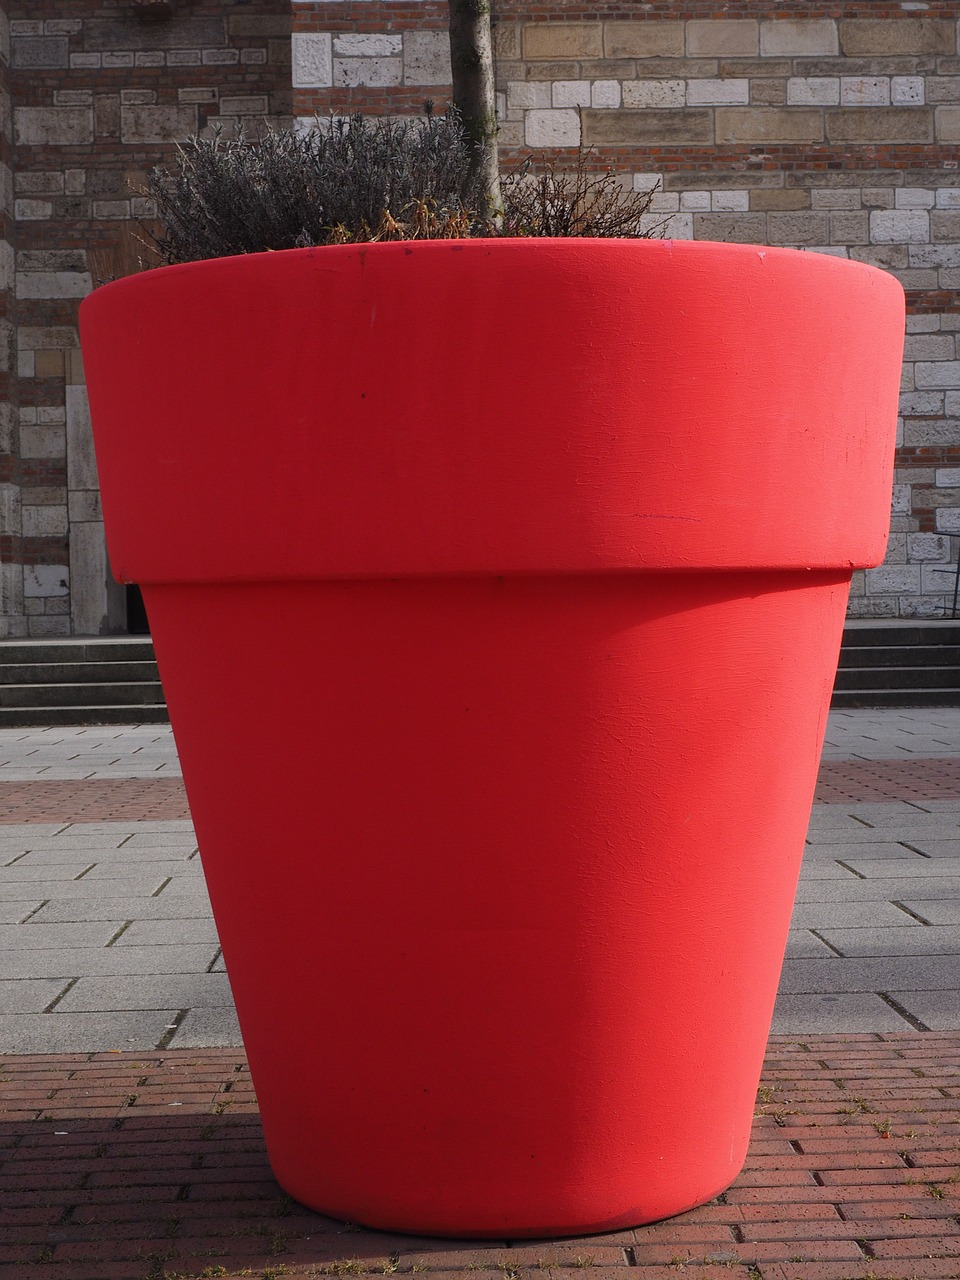 flowerpot plus size red free photo